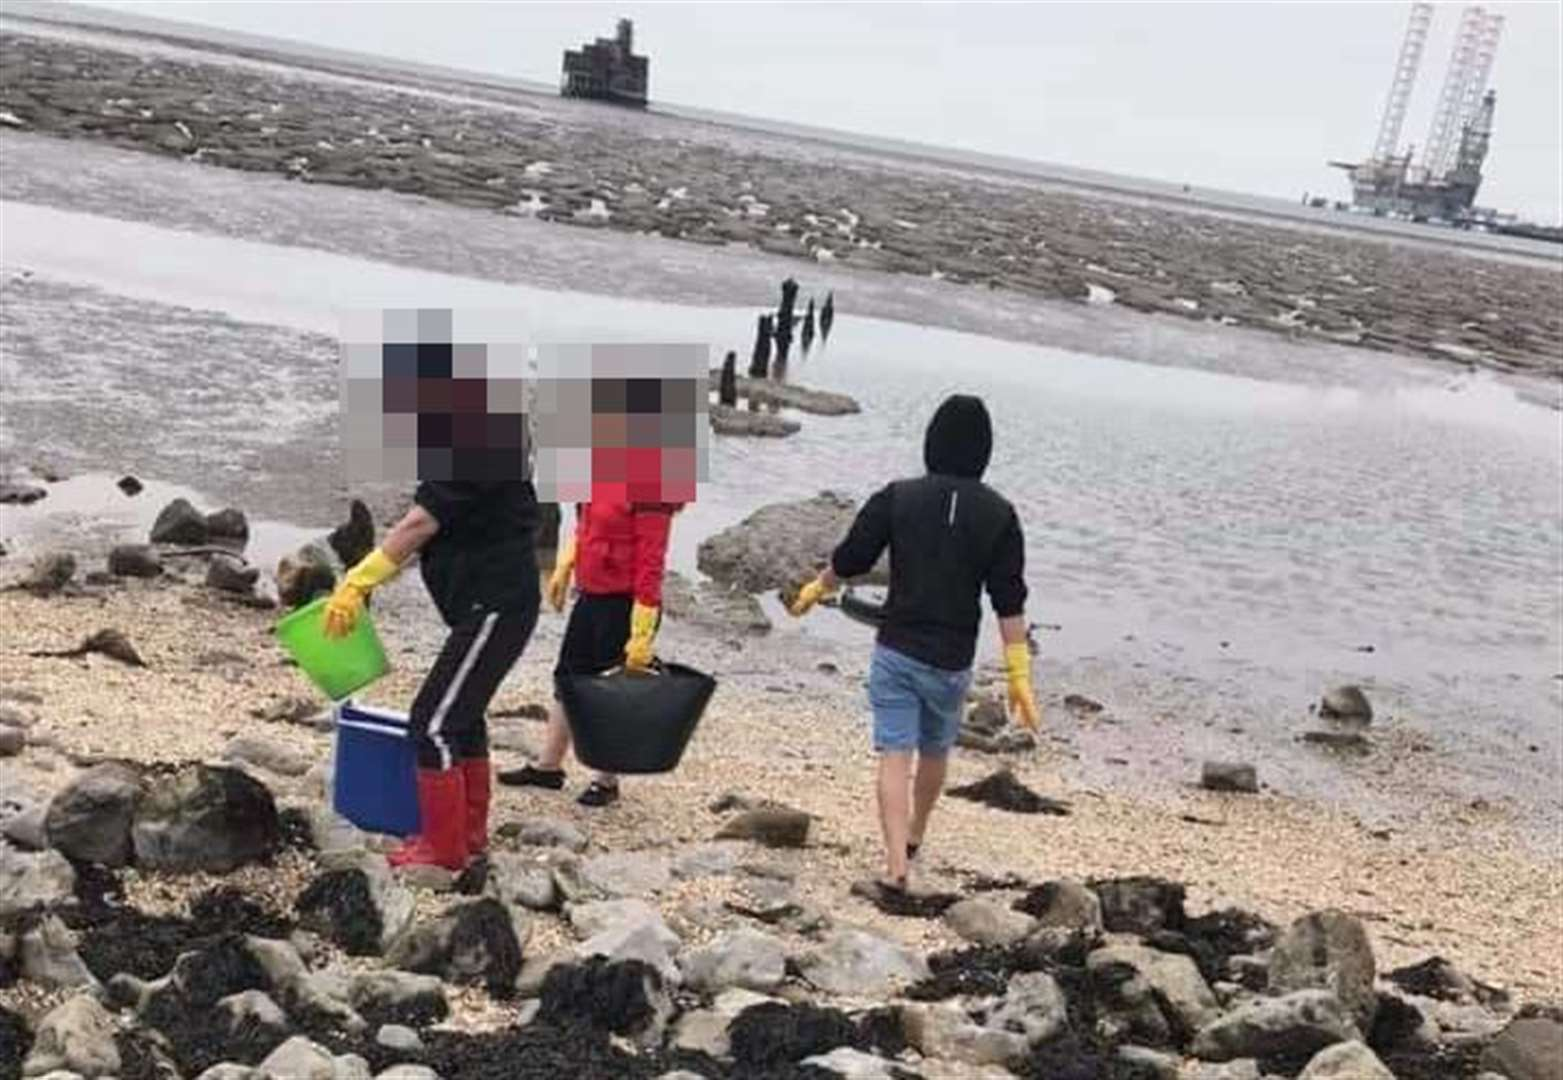 Petition launched to stop 'rape and pillage' of beaches